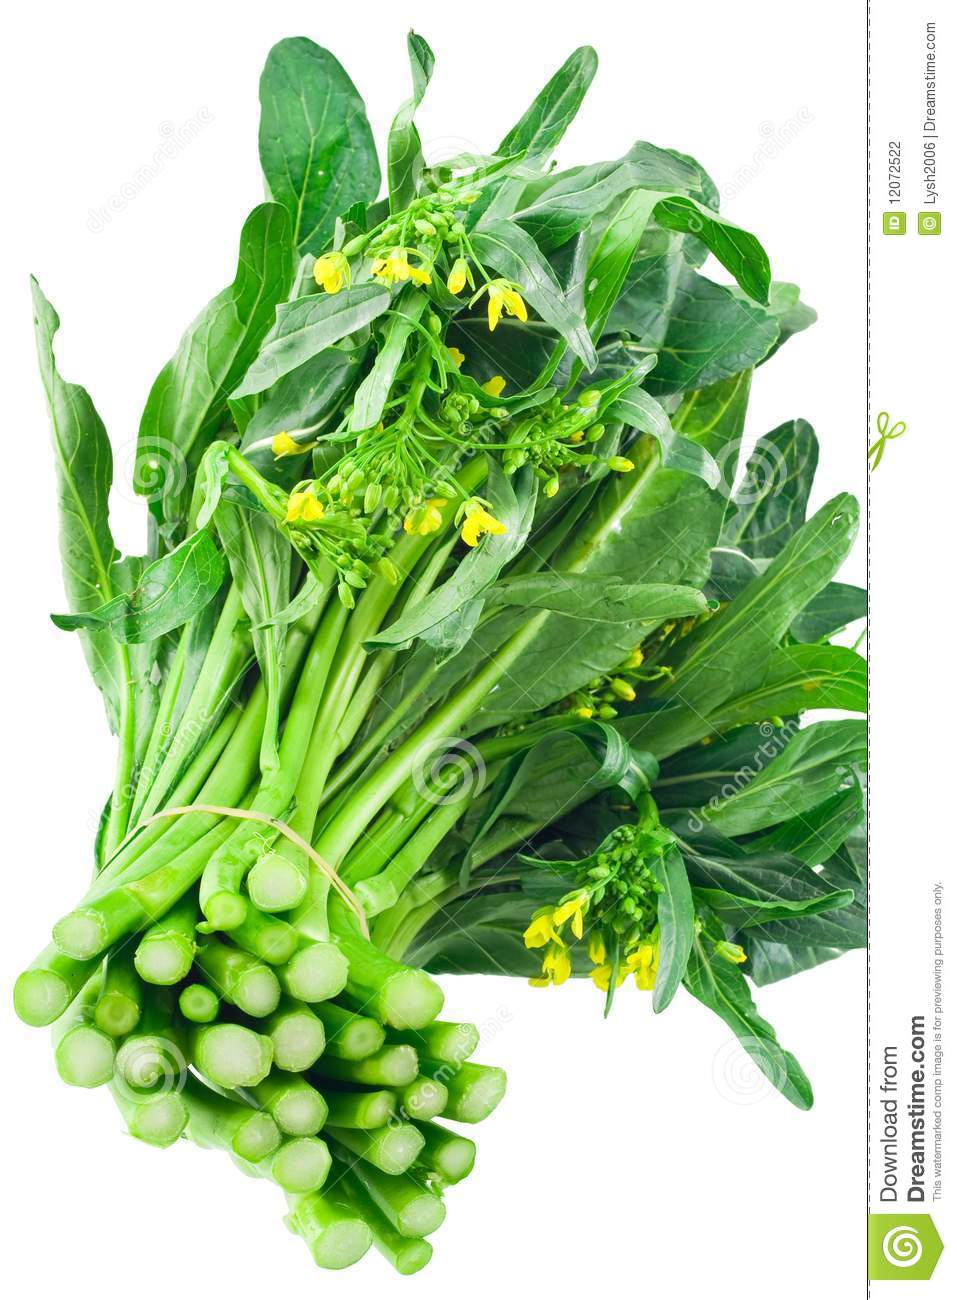 Vegetable Choy Sum Stock Photography - Image: 12072522